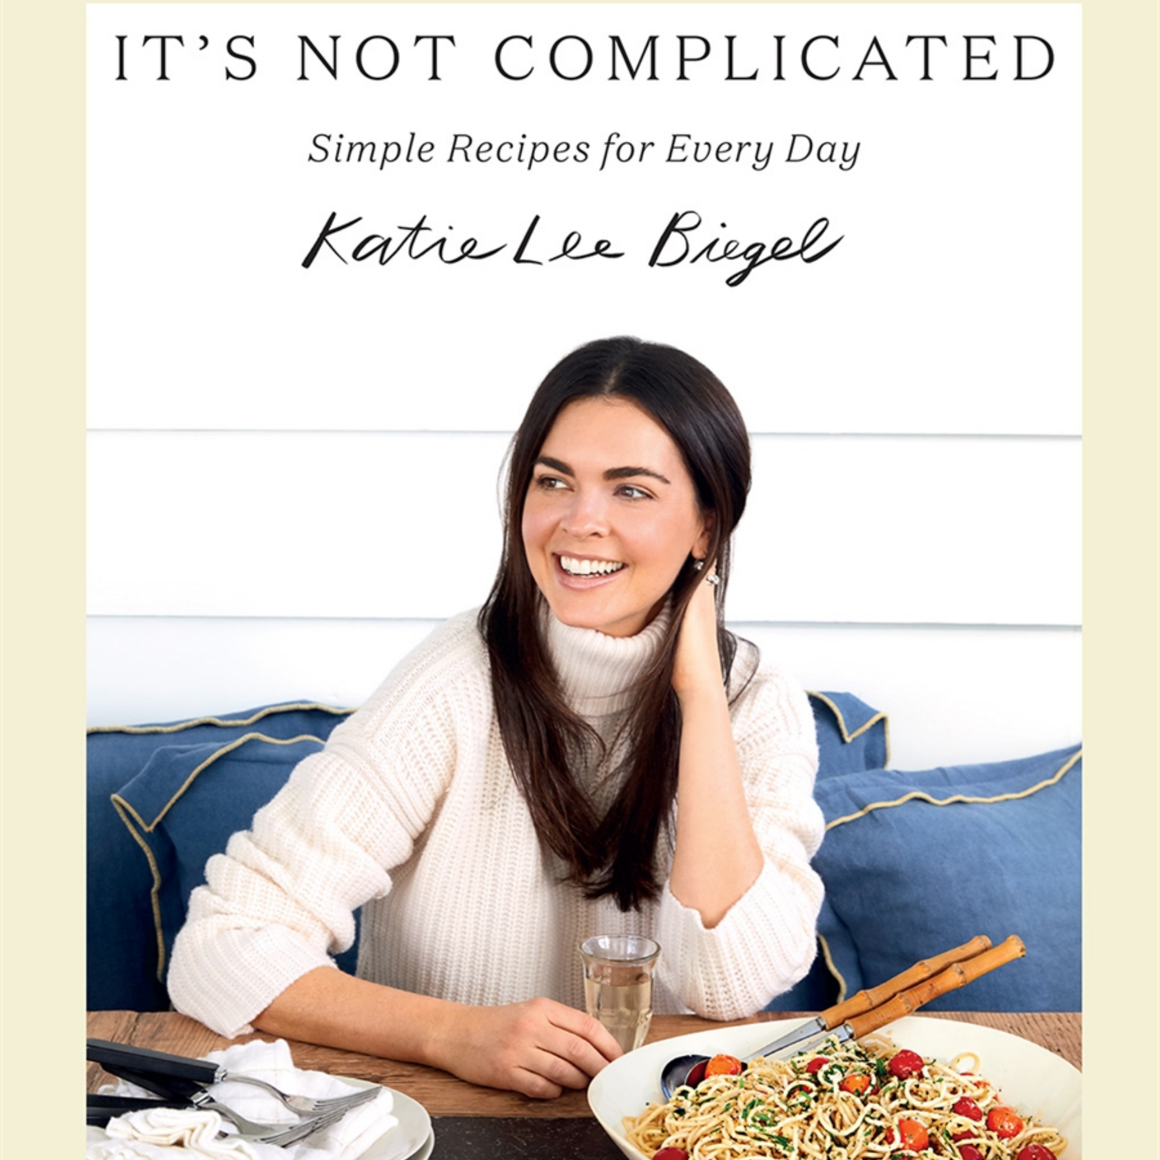 IT'S NOT COMPLICATED - SIMPLE RECIPES FOR EVERYDAY